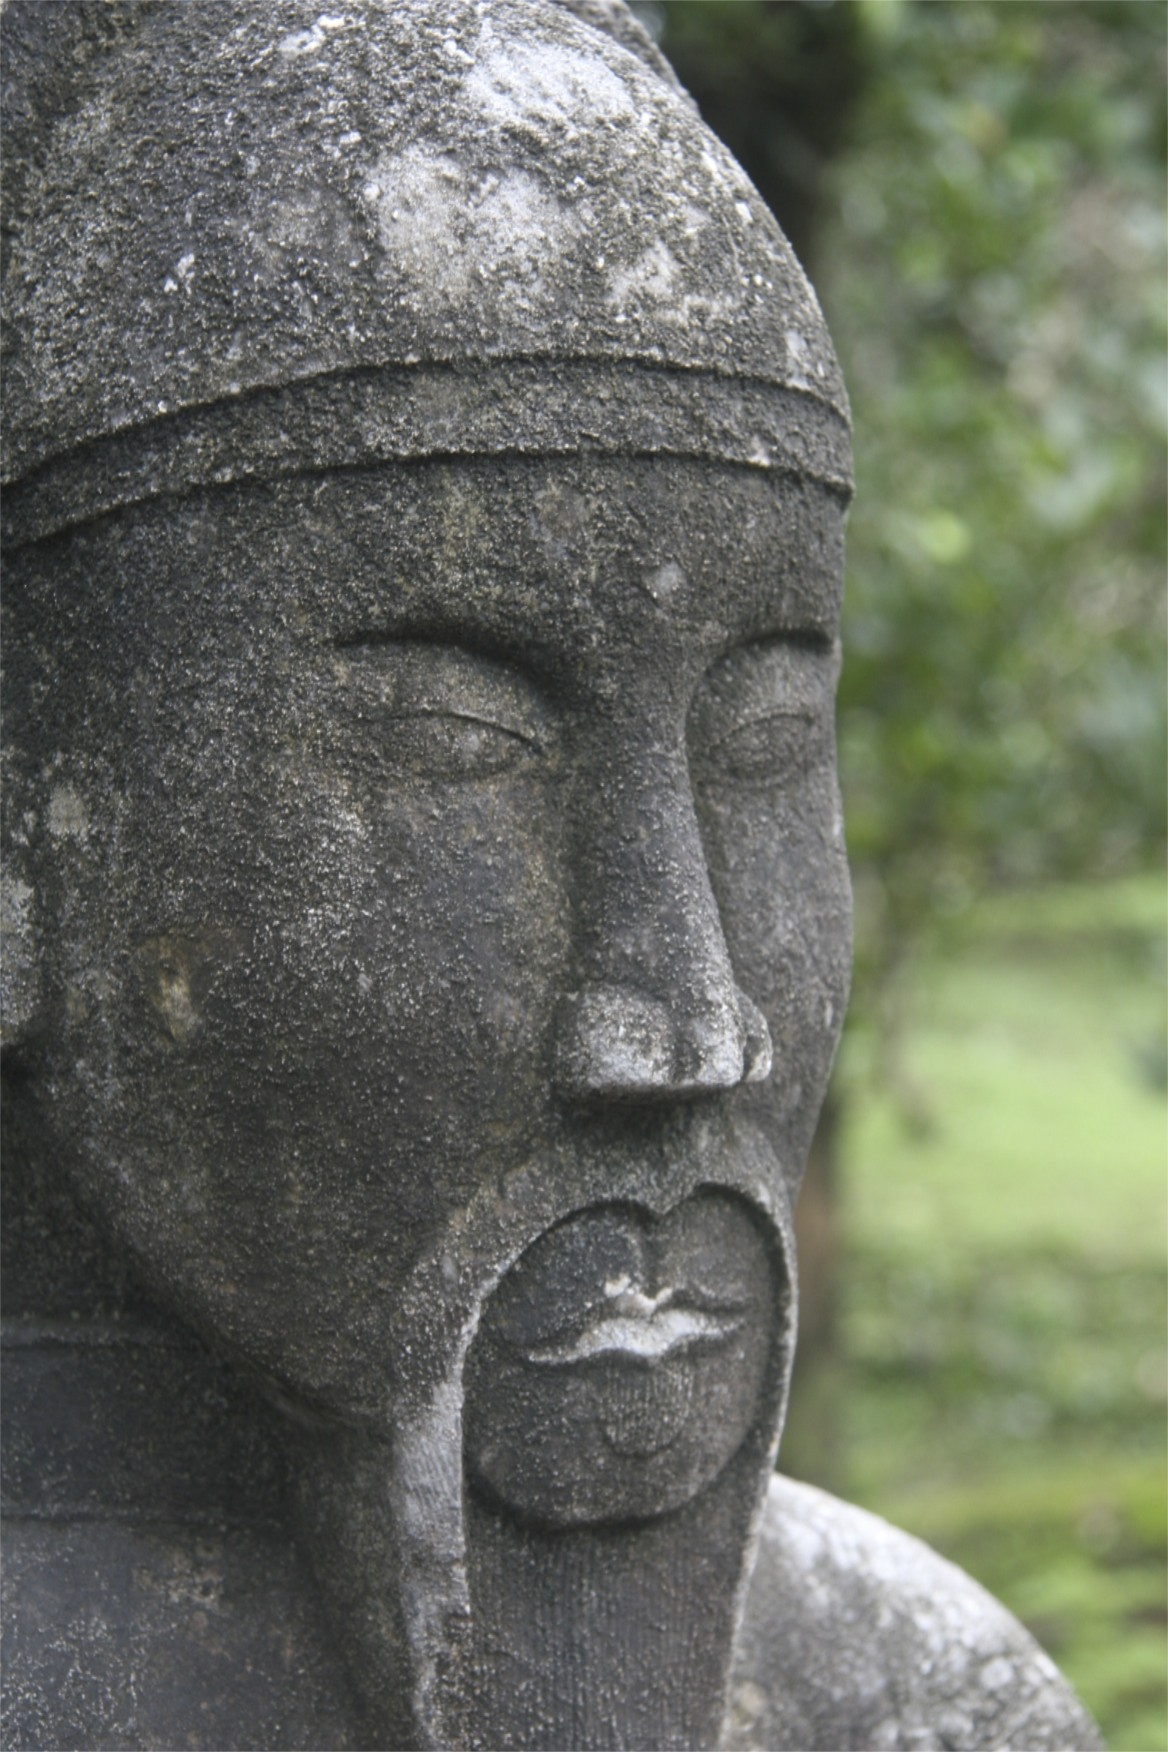 Cool statue at the tombs in Hue.